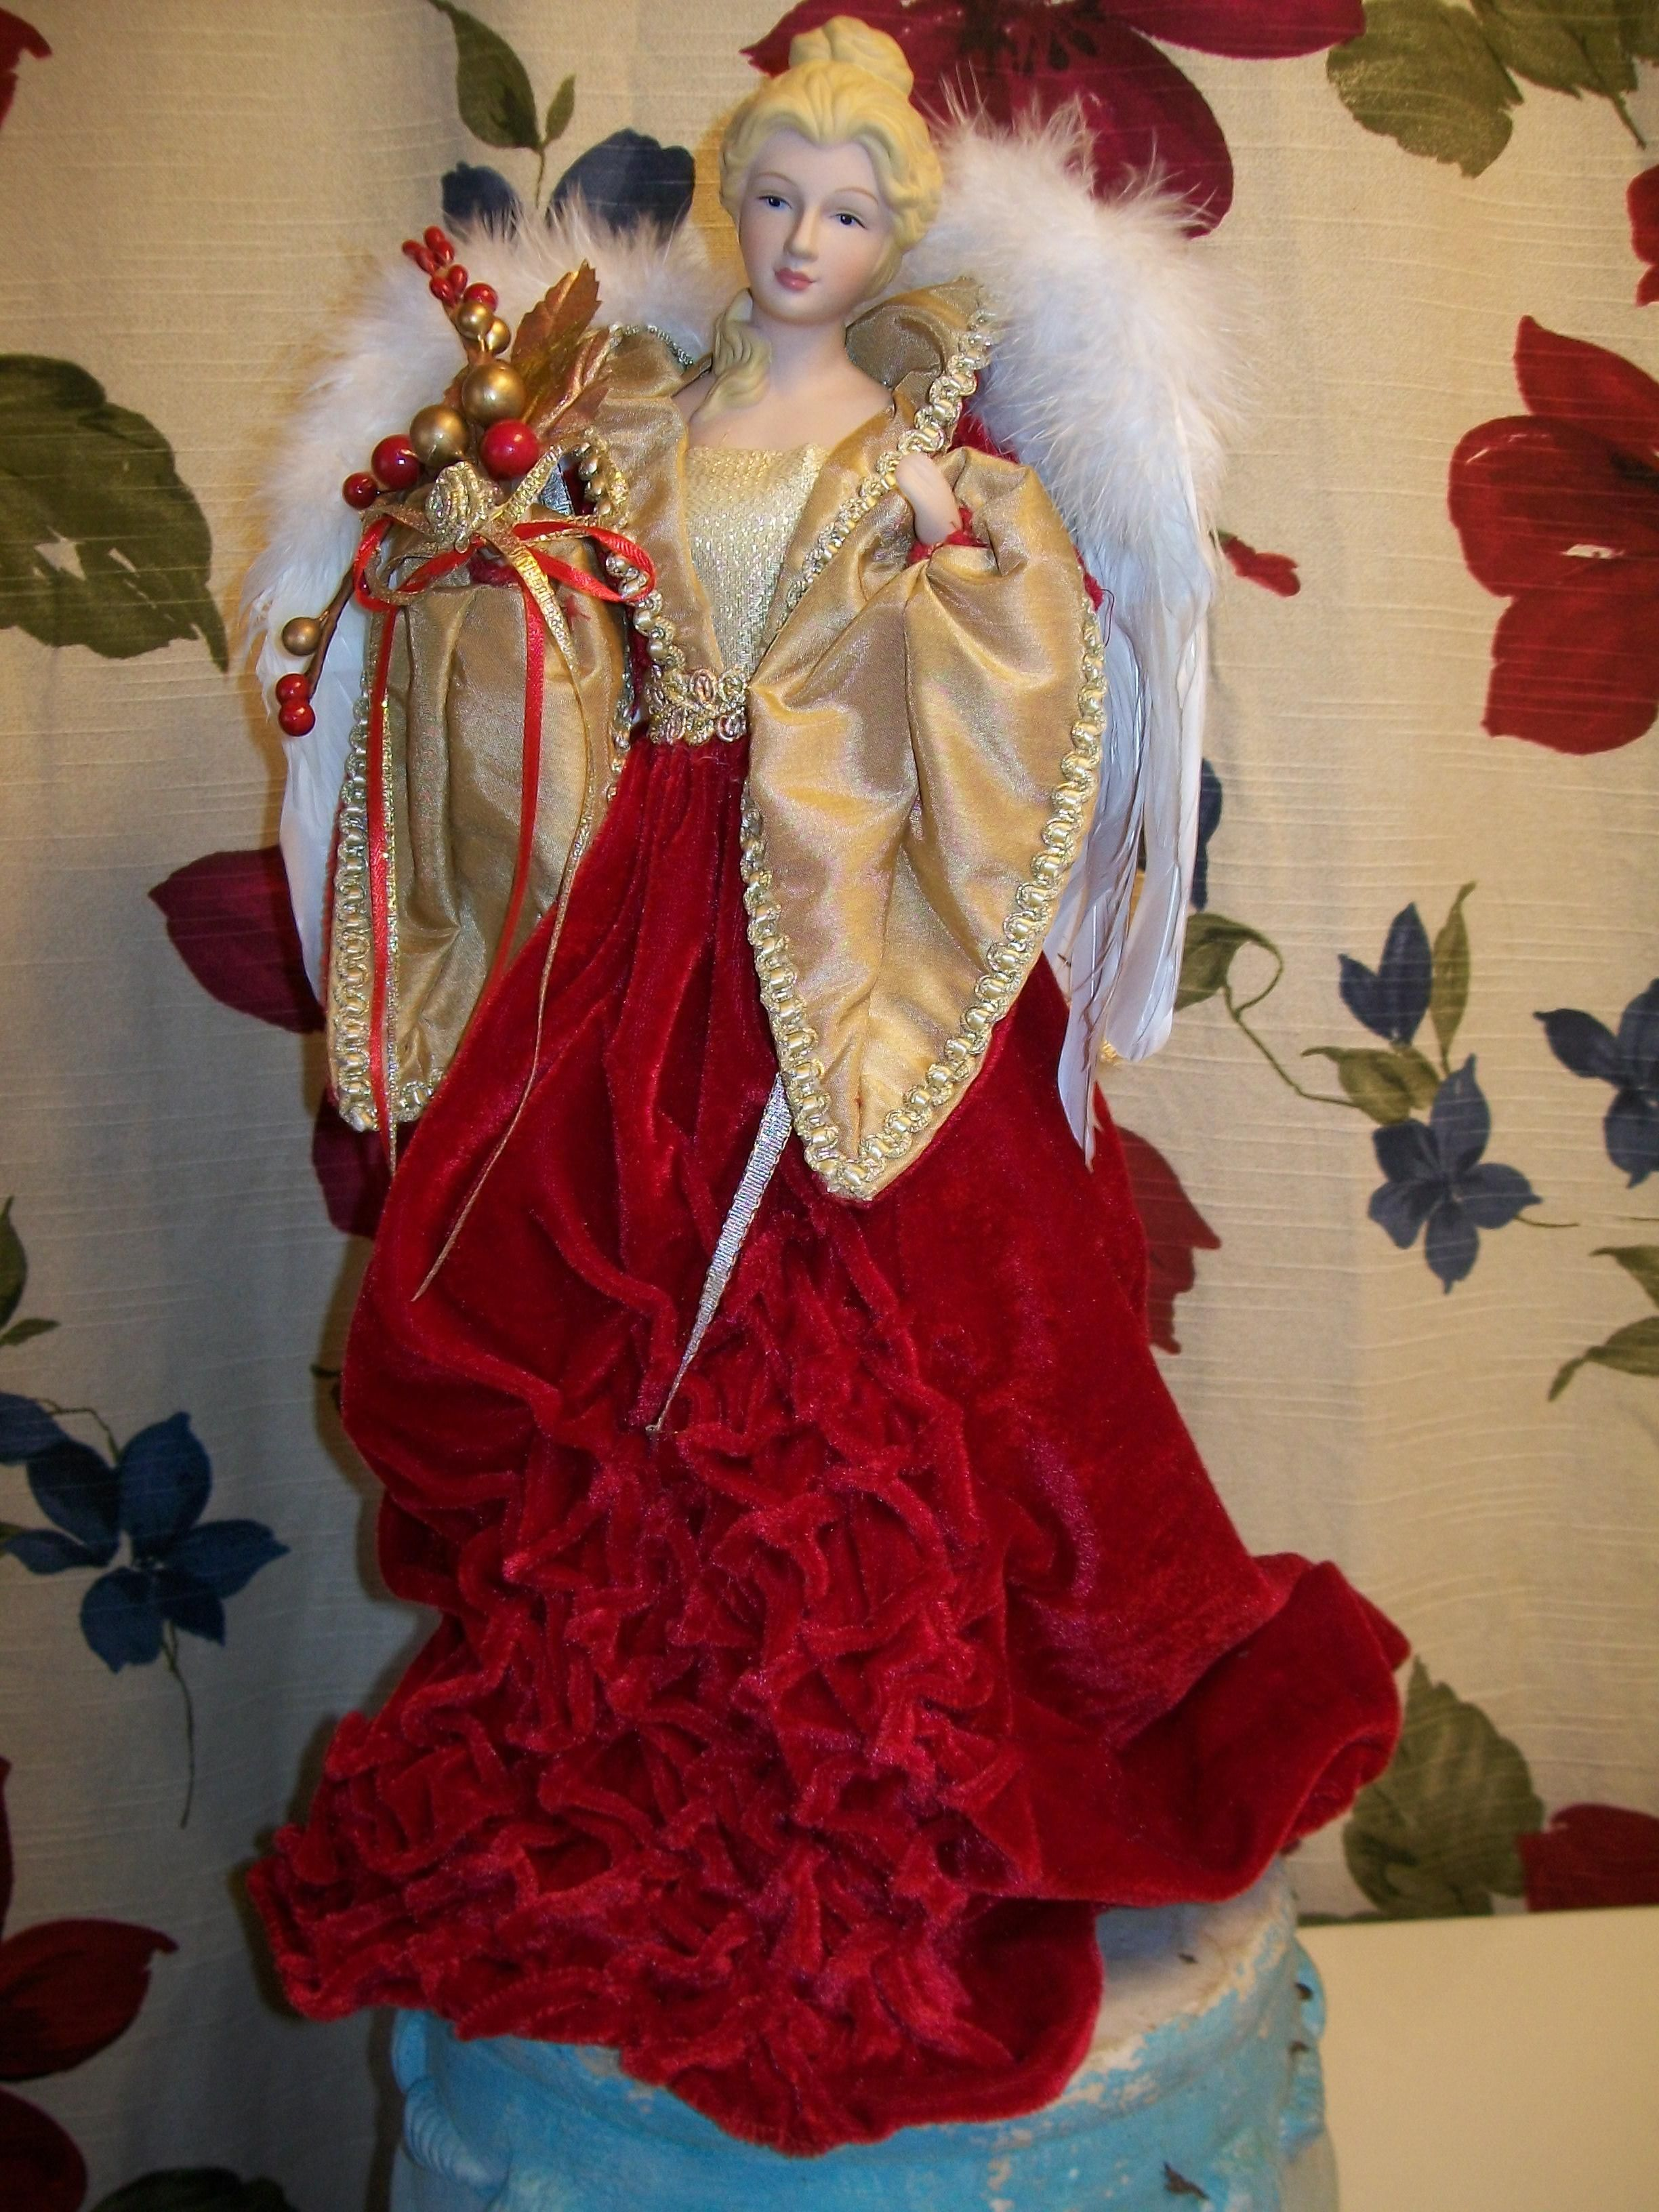 Blonde Angel Tree Topper Table Red Dress Christmas Victorian Nos Victorian Christmas Tree Topper Red Christmas Dress Angel Tree Topper